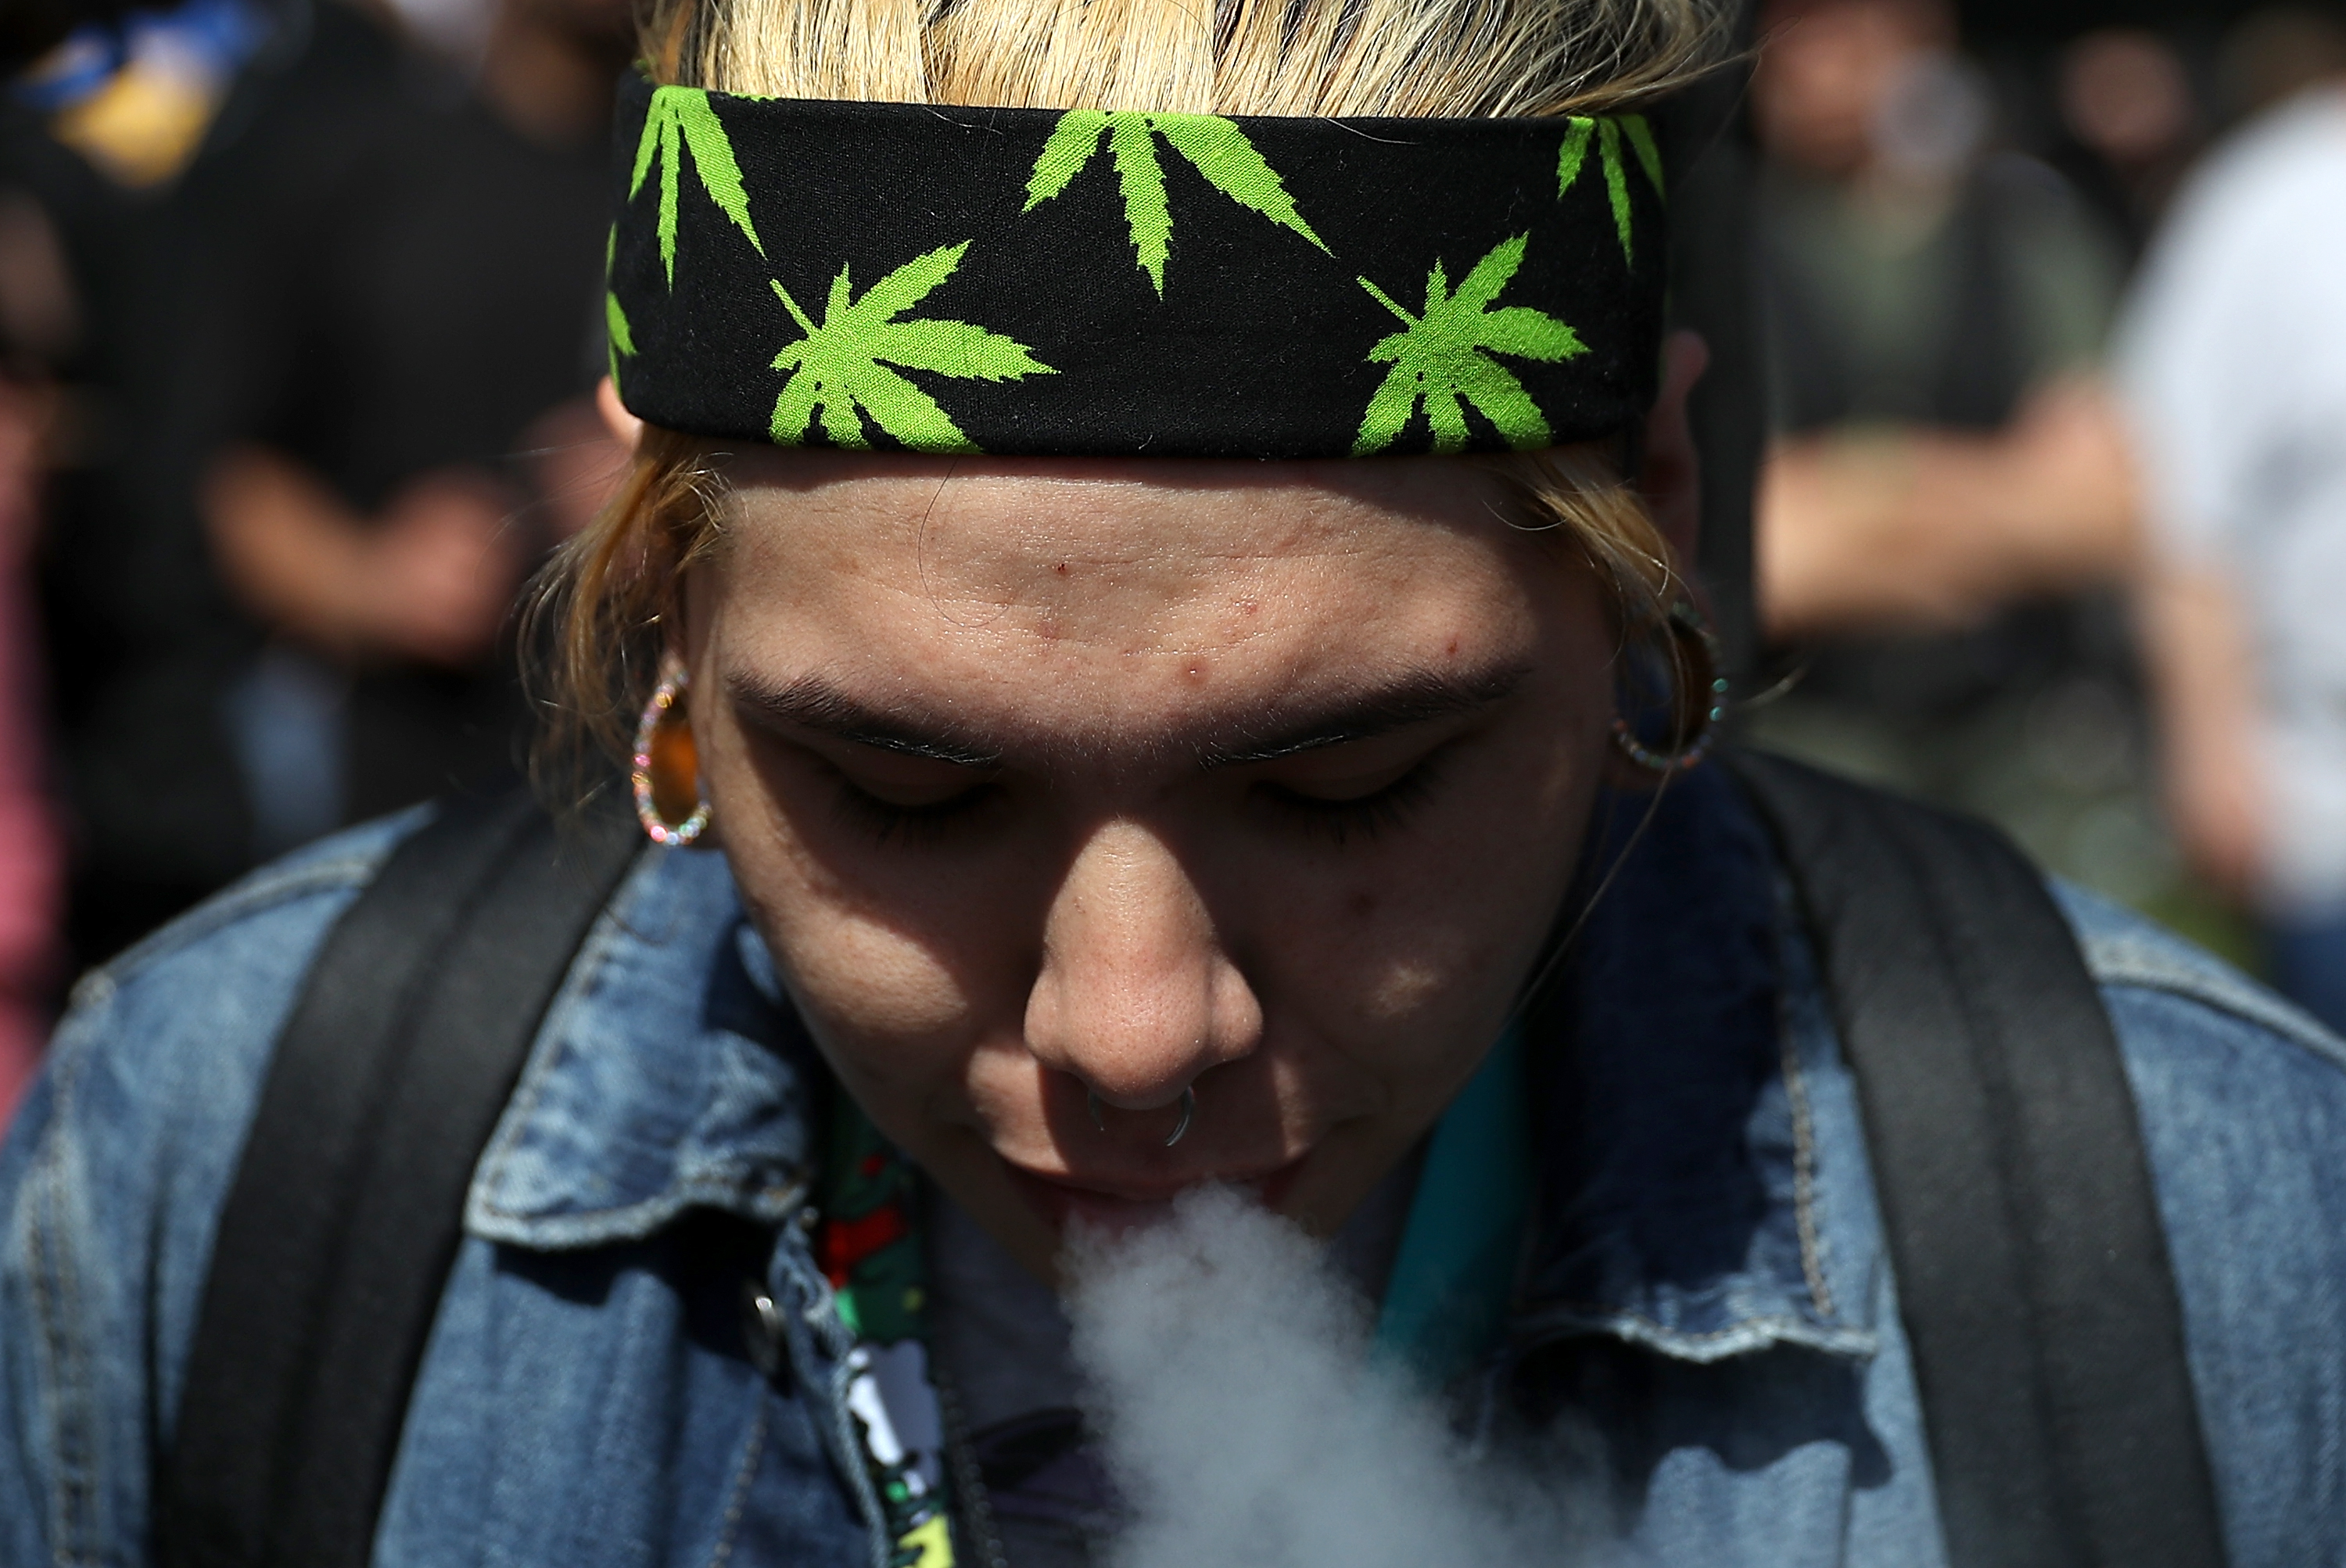 A marijuana user blows smoke after taking a hit from a bong during a 420 Day celebration on 'Hippie Hill' in Golden Gate Park on April 20, 2018, in San Francisco, California. (Getty Images)